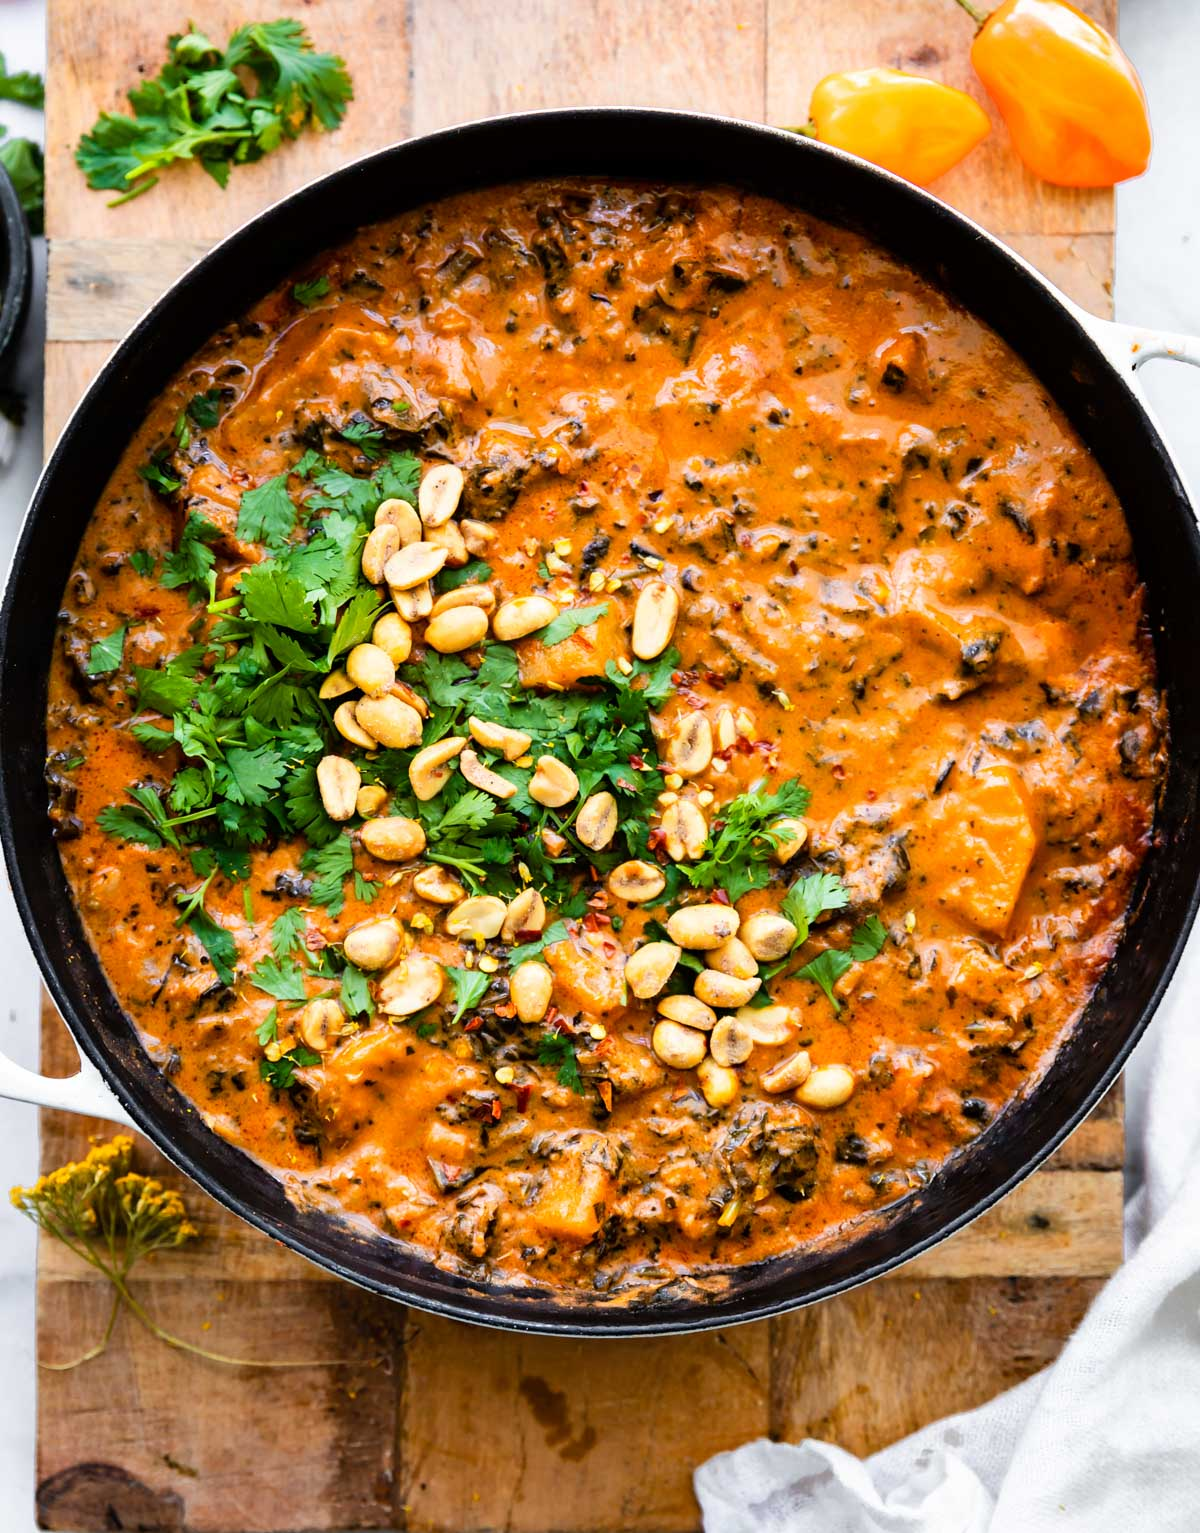 overhead: large pot of spicy stew garnished with peanuts and cilantro